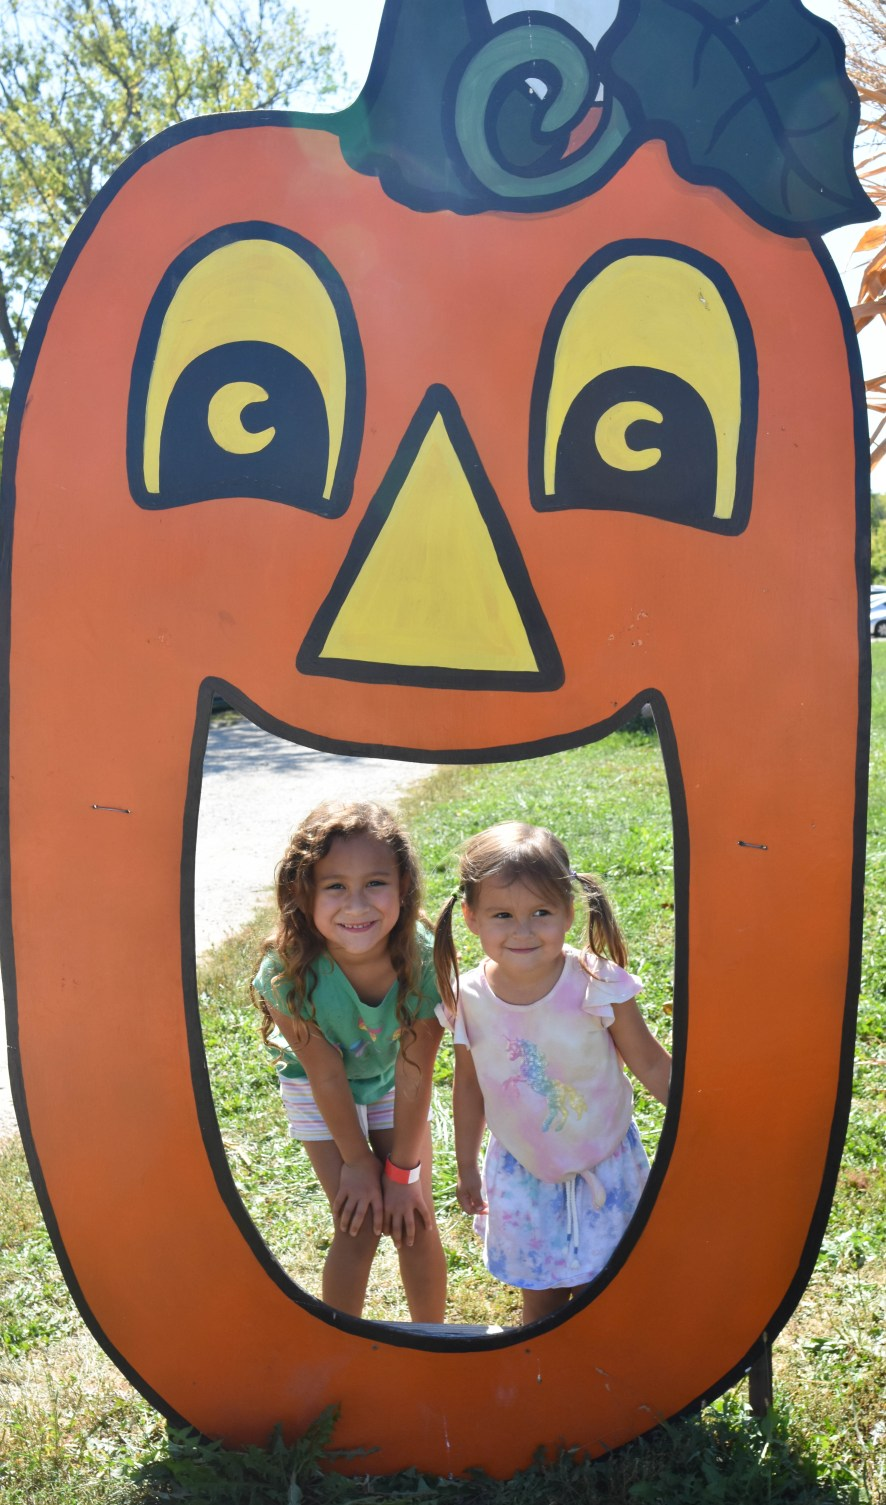 Family-friendly activities at Apple Holler farm near Chicago